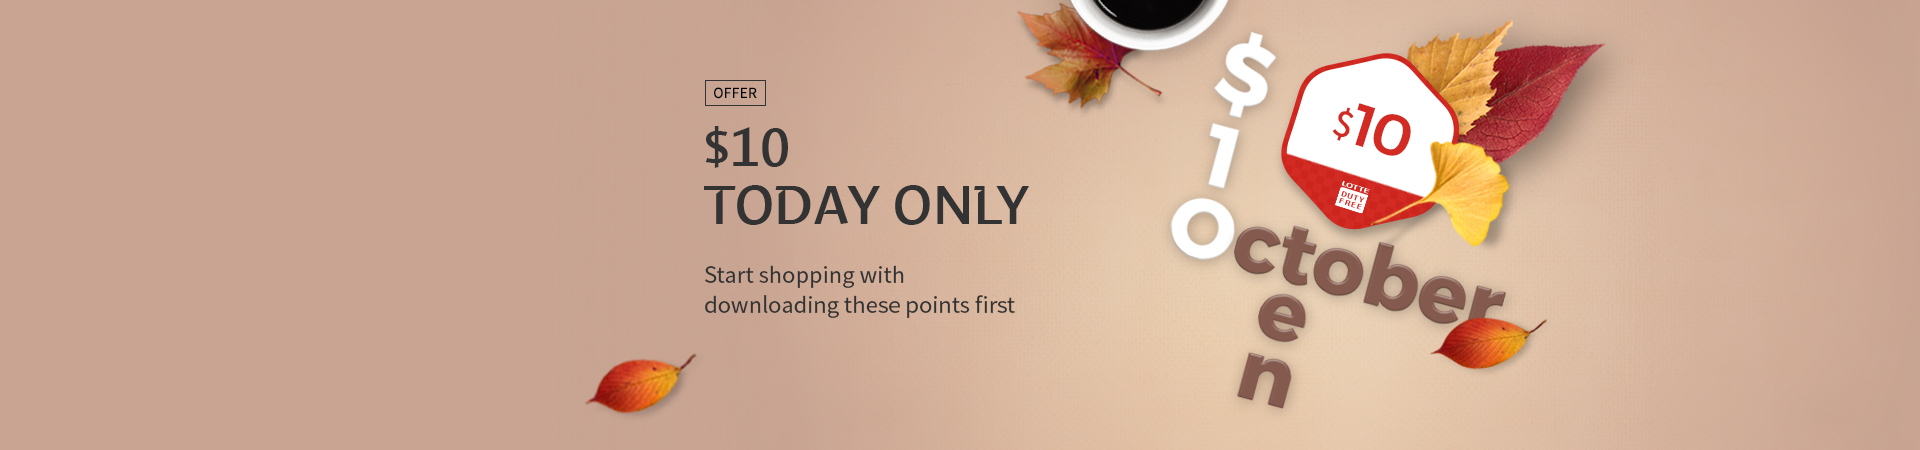 10/23 Today Only! $10 Reward points